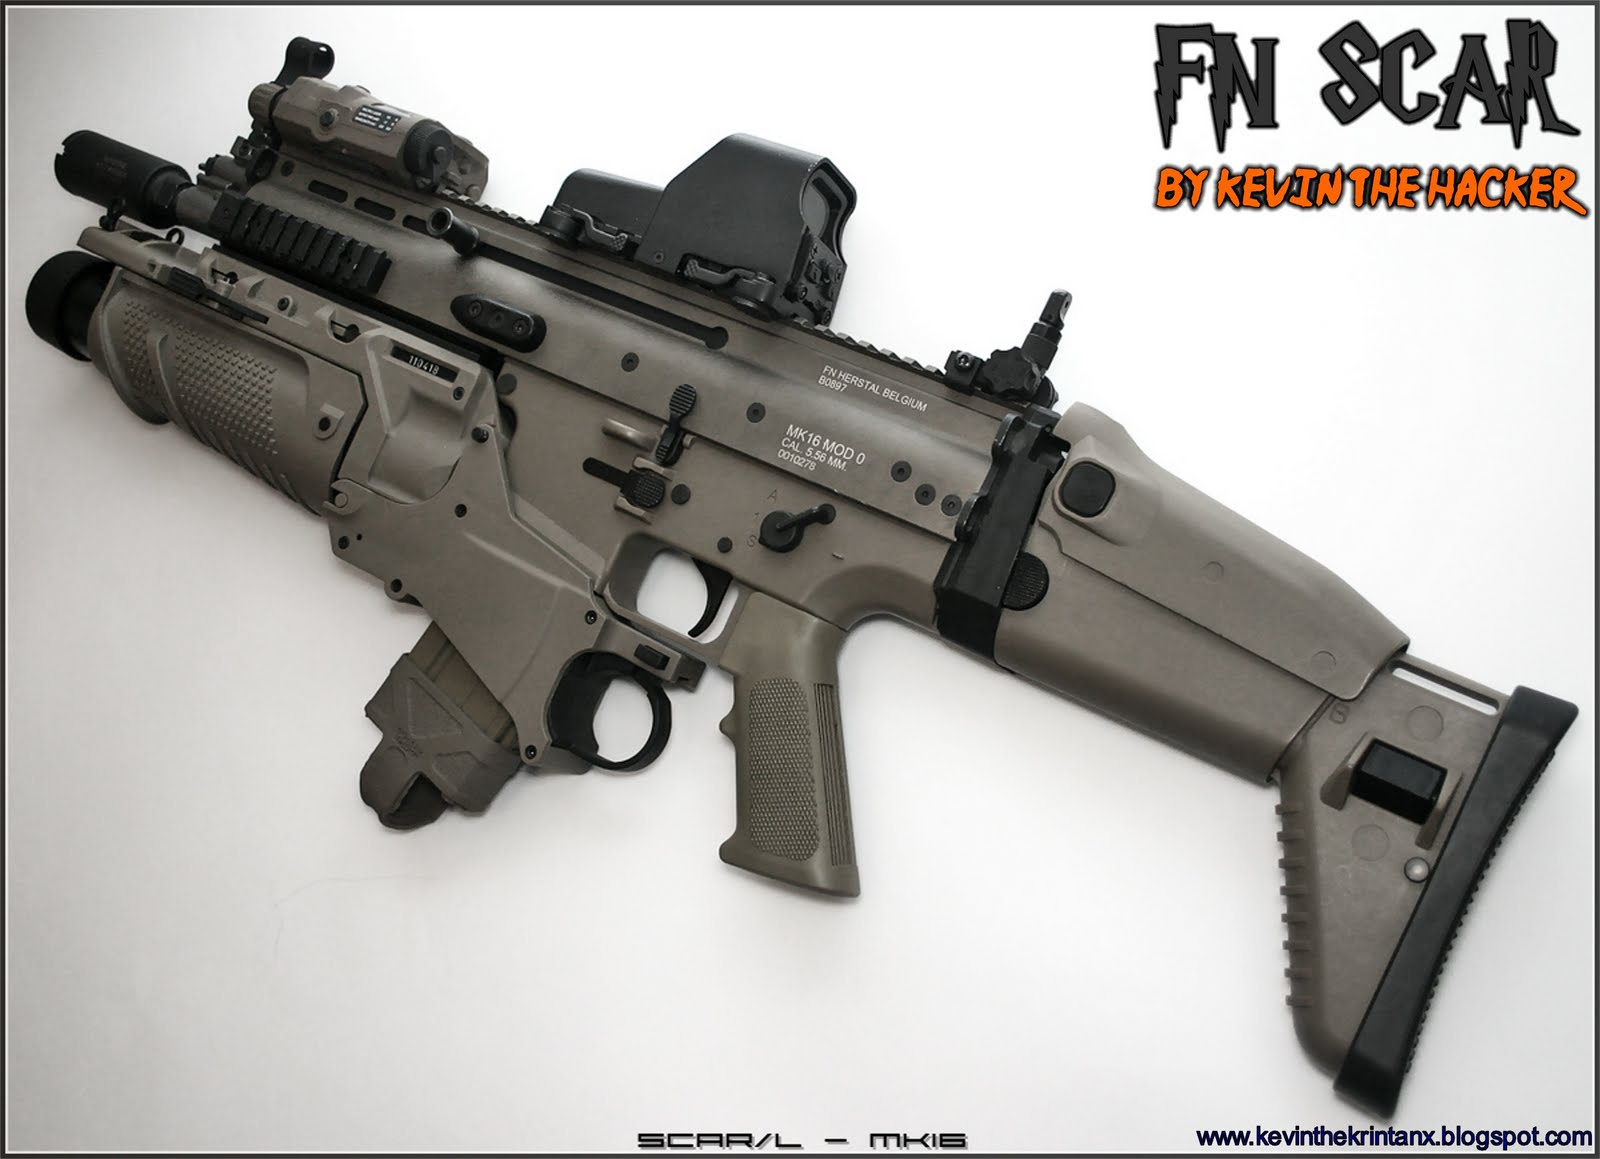 FN SCAR 16 Wallpaper Downloads http://re-downloads.info/Wallpapers-Fn-Scar-Mark-16-And-Mark-17-Special-Forces-Combat-Assault-Rifle-Usa.html